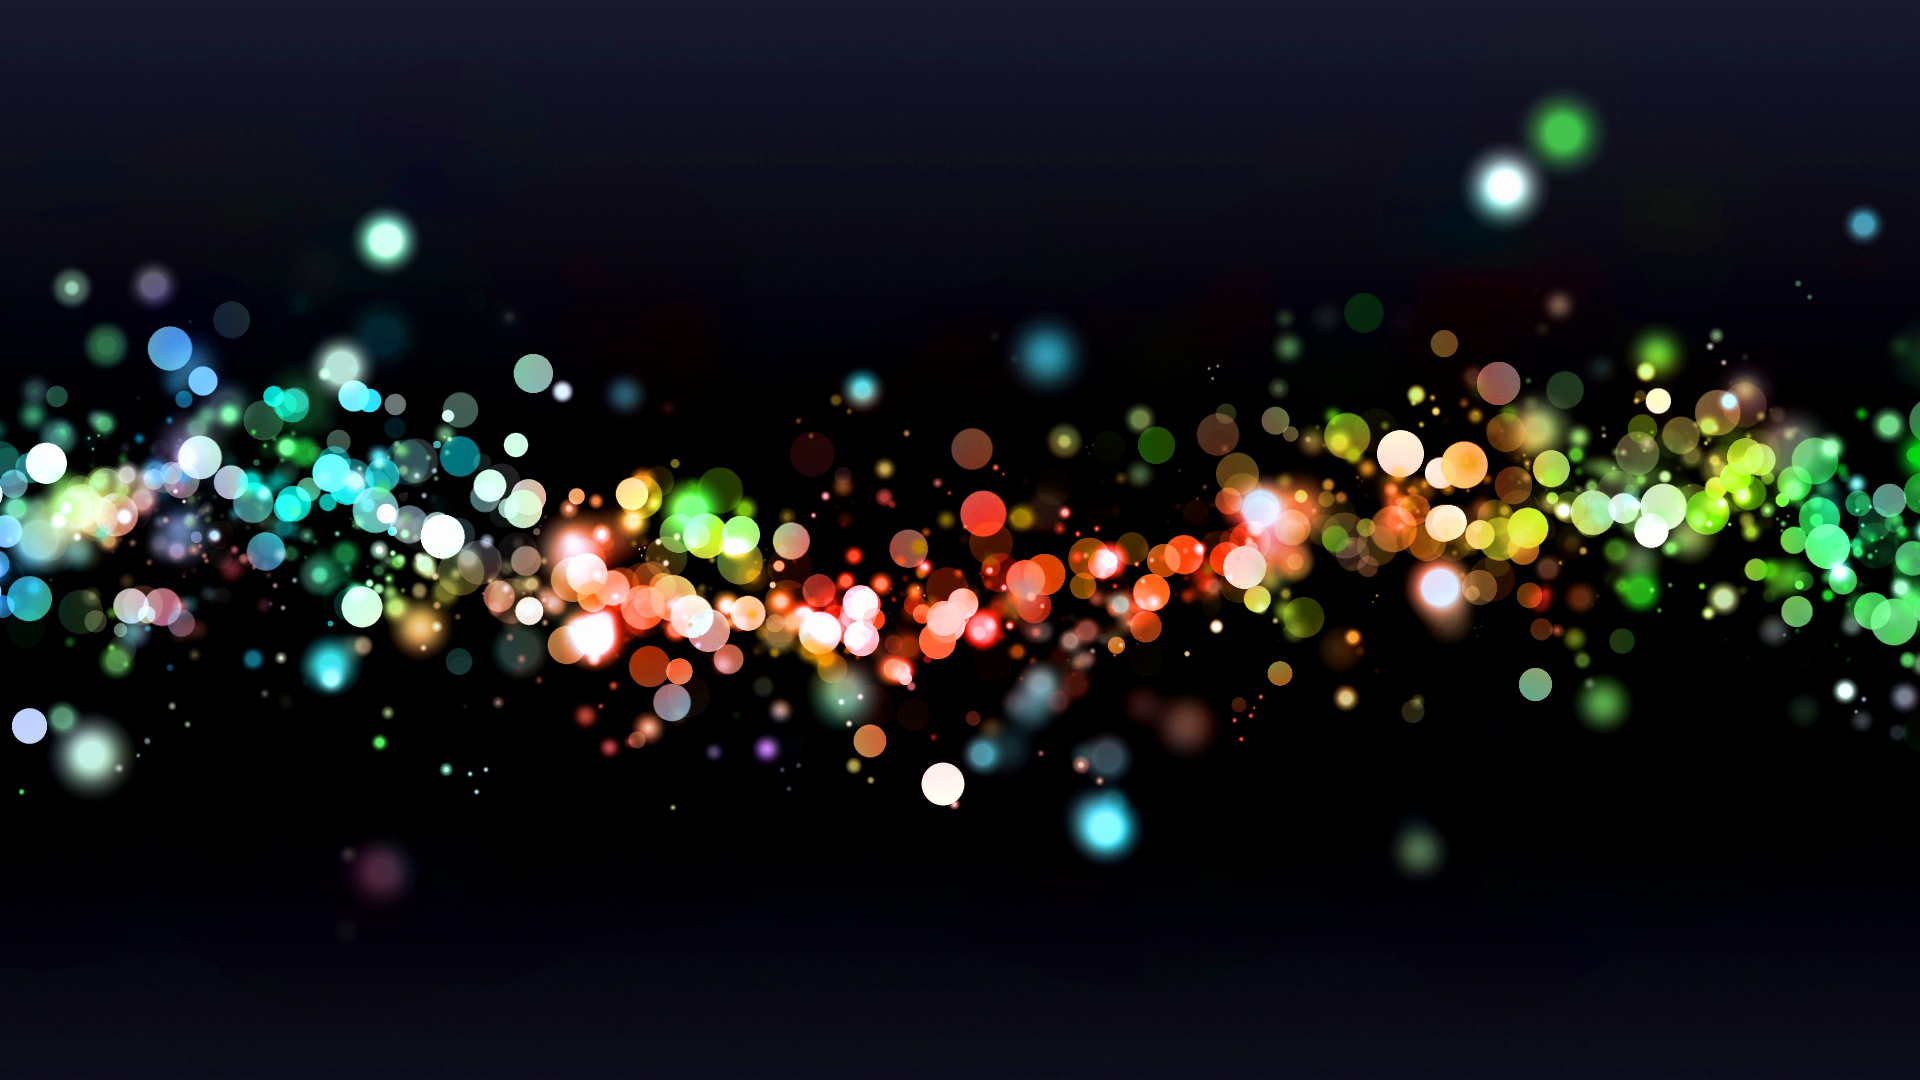 Colorful Lights wallpaper